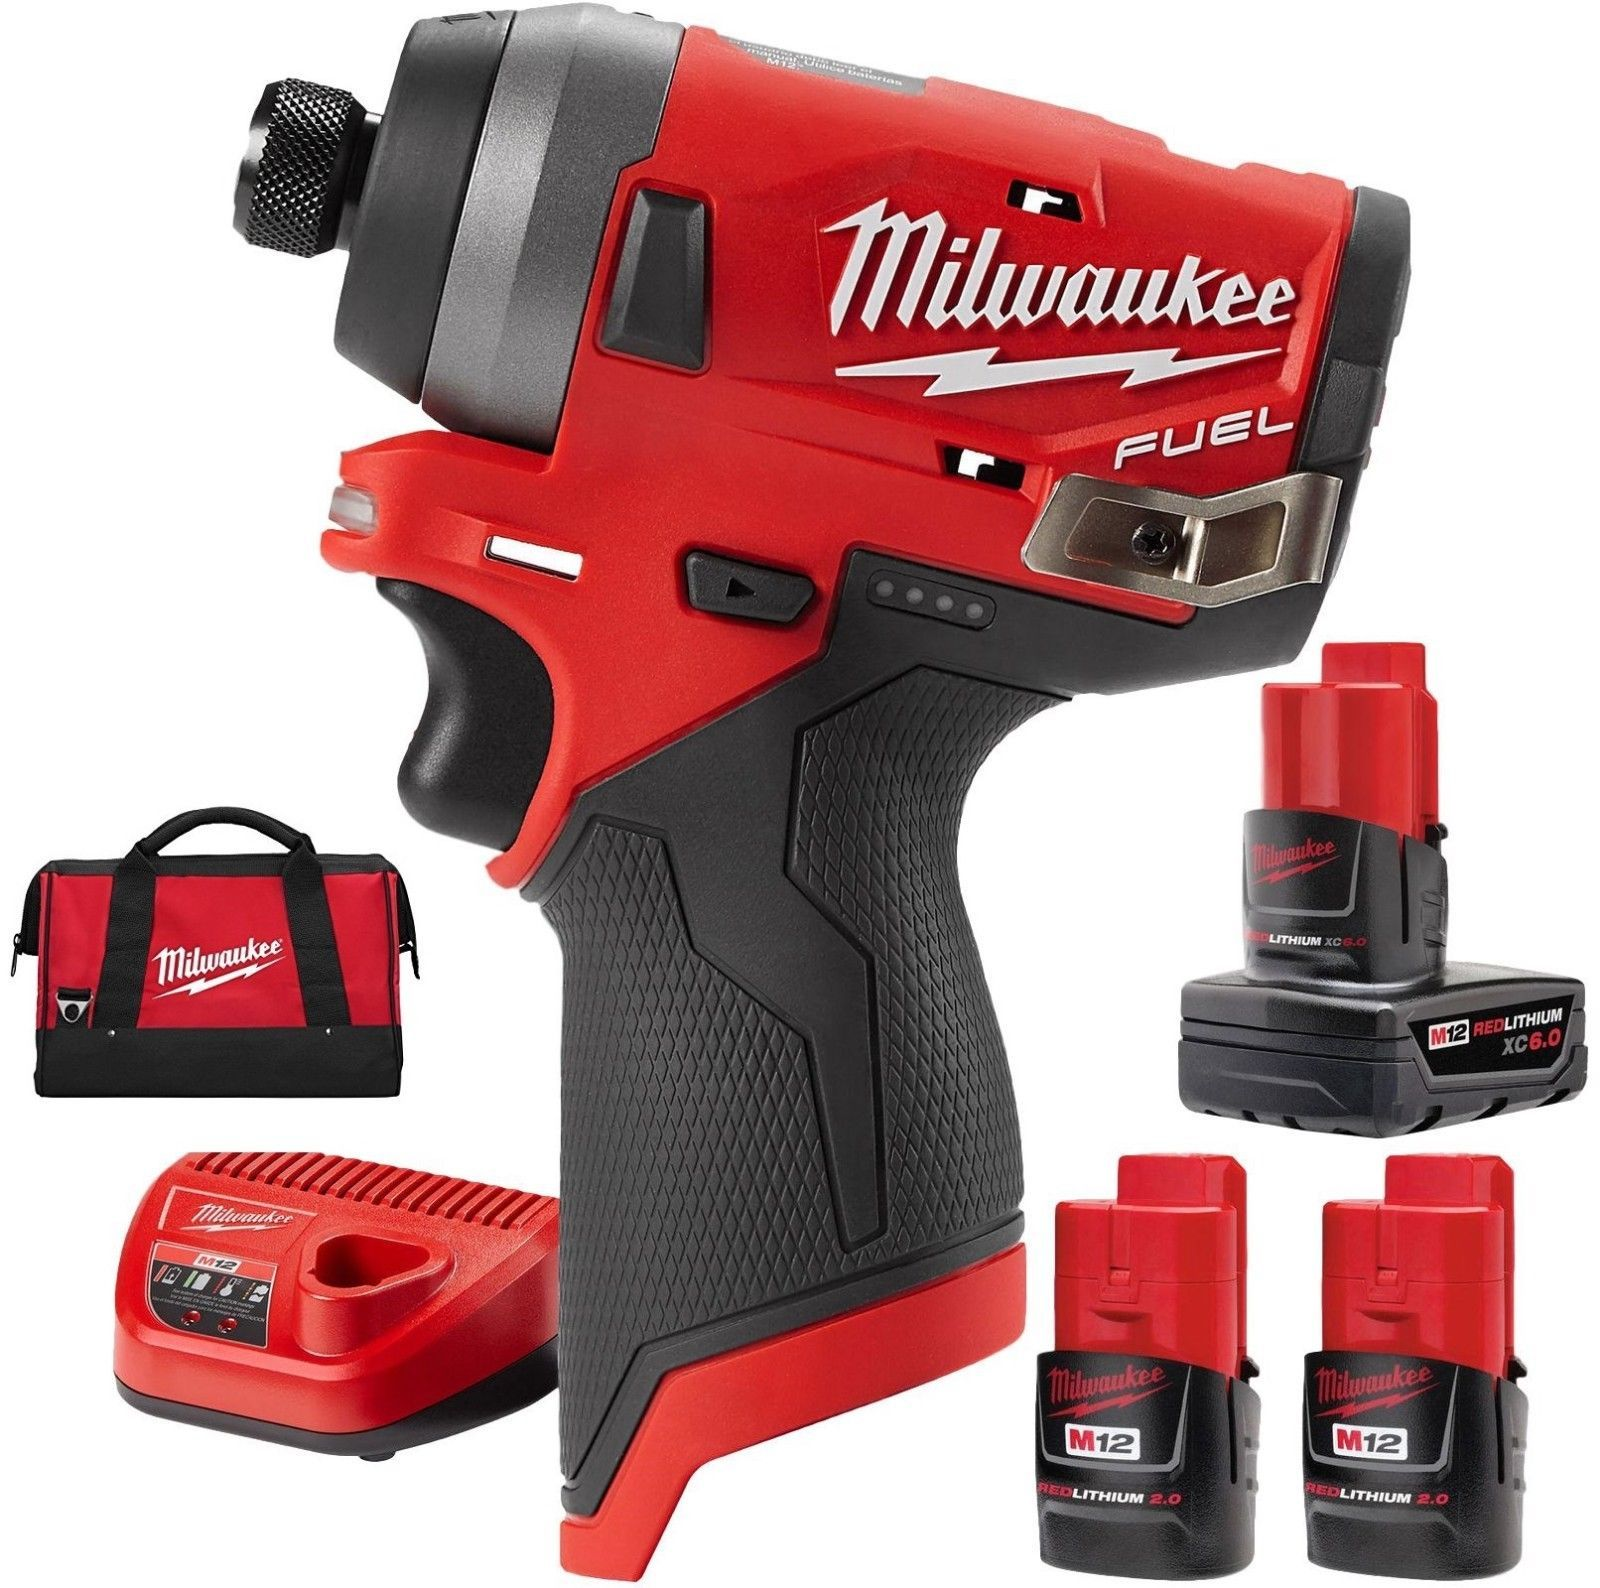 Impact Drivers 168134 Milwaukee 2553 22 M12 Fuel 1 4 Hex Impact Driver Kit W Free 6 0ah Battery Buy It Now Only 1 Impact Driver Milwaukee Milwaukee Tools